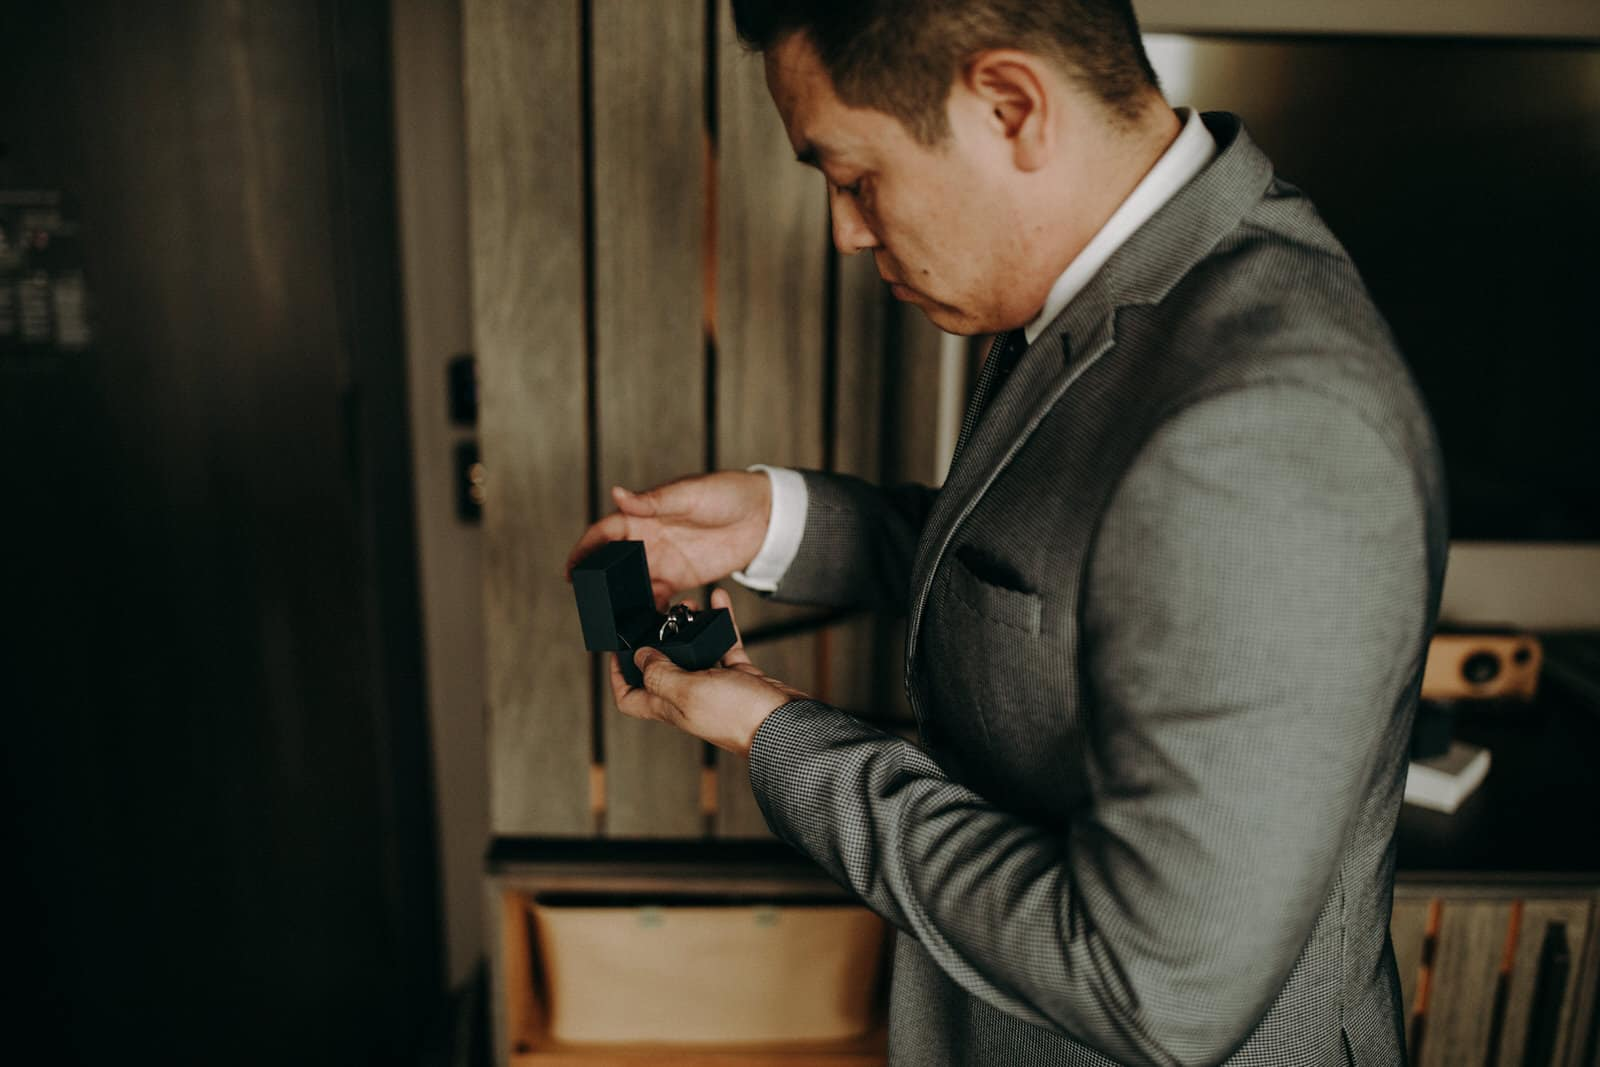 The groom is looking at the two wedding rings.